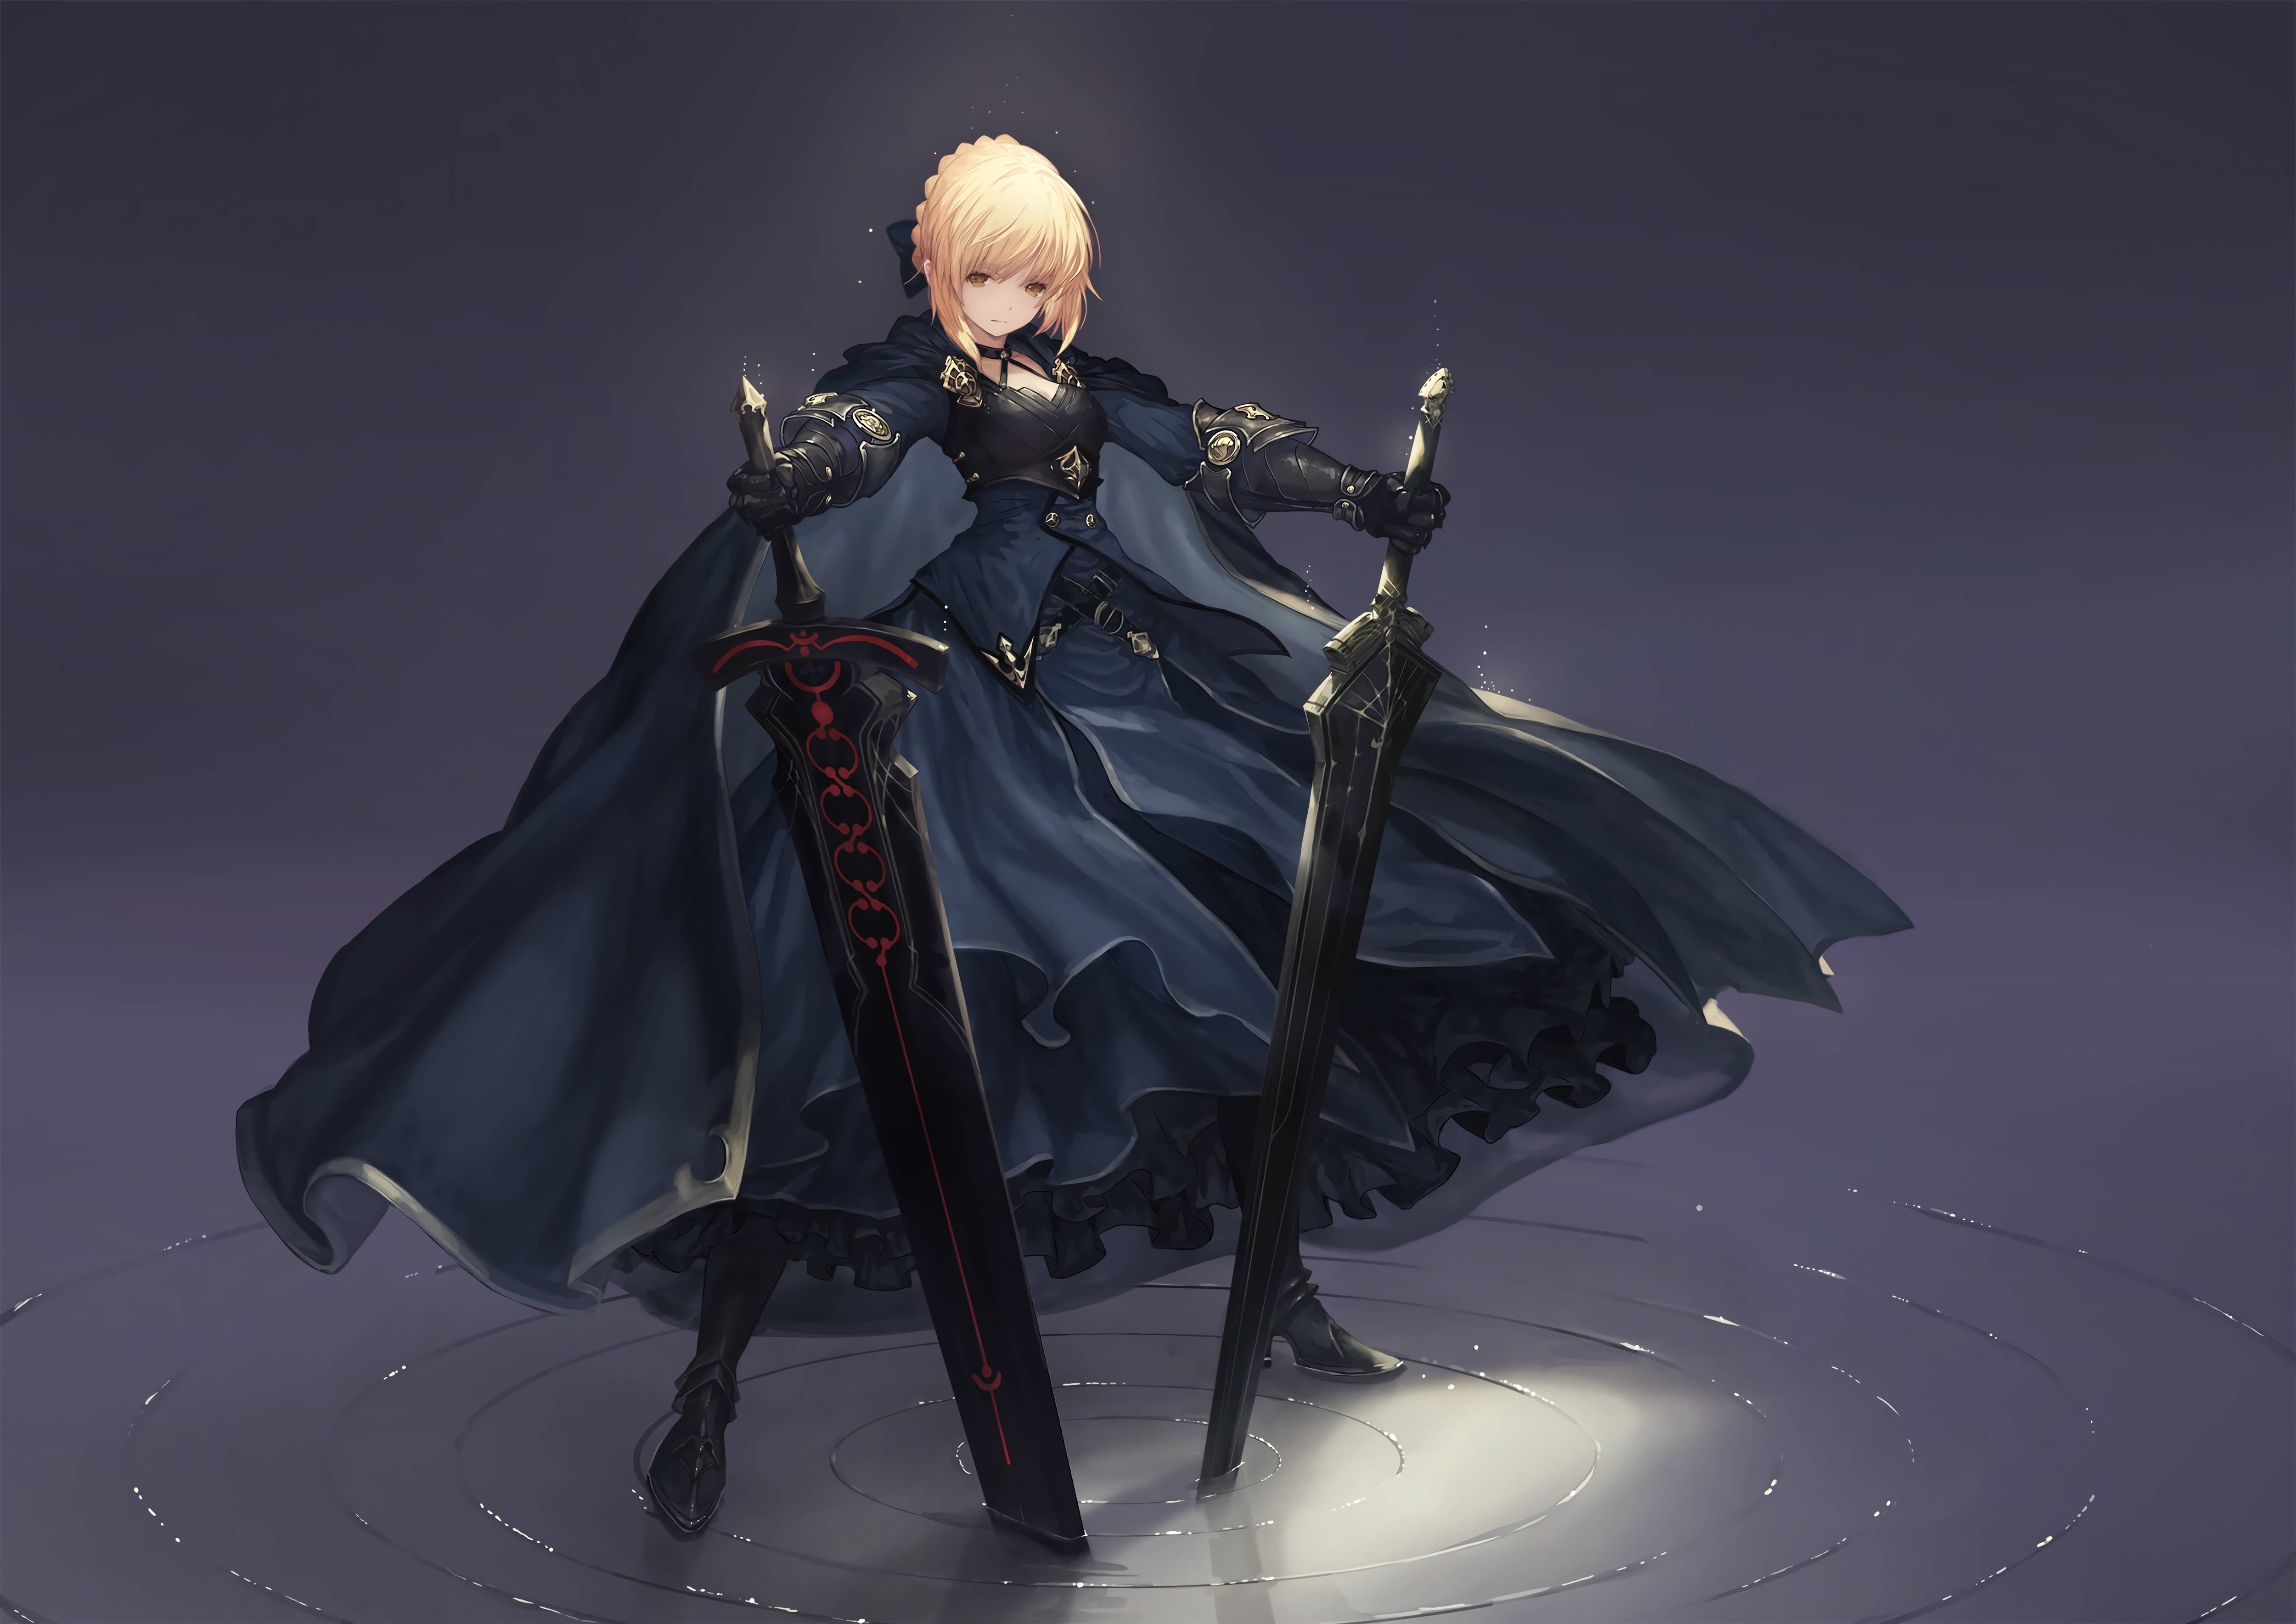 Saber Alter 5000x3536 Hd Wallpaper From Gallsource Com Anime